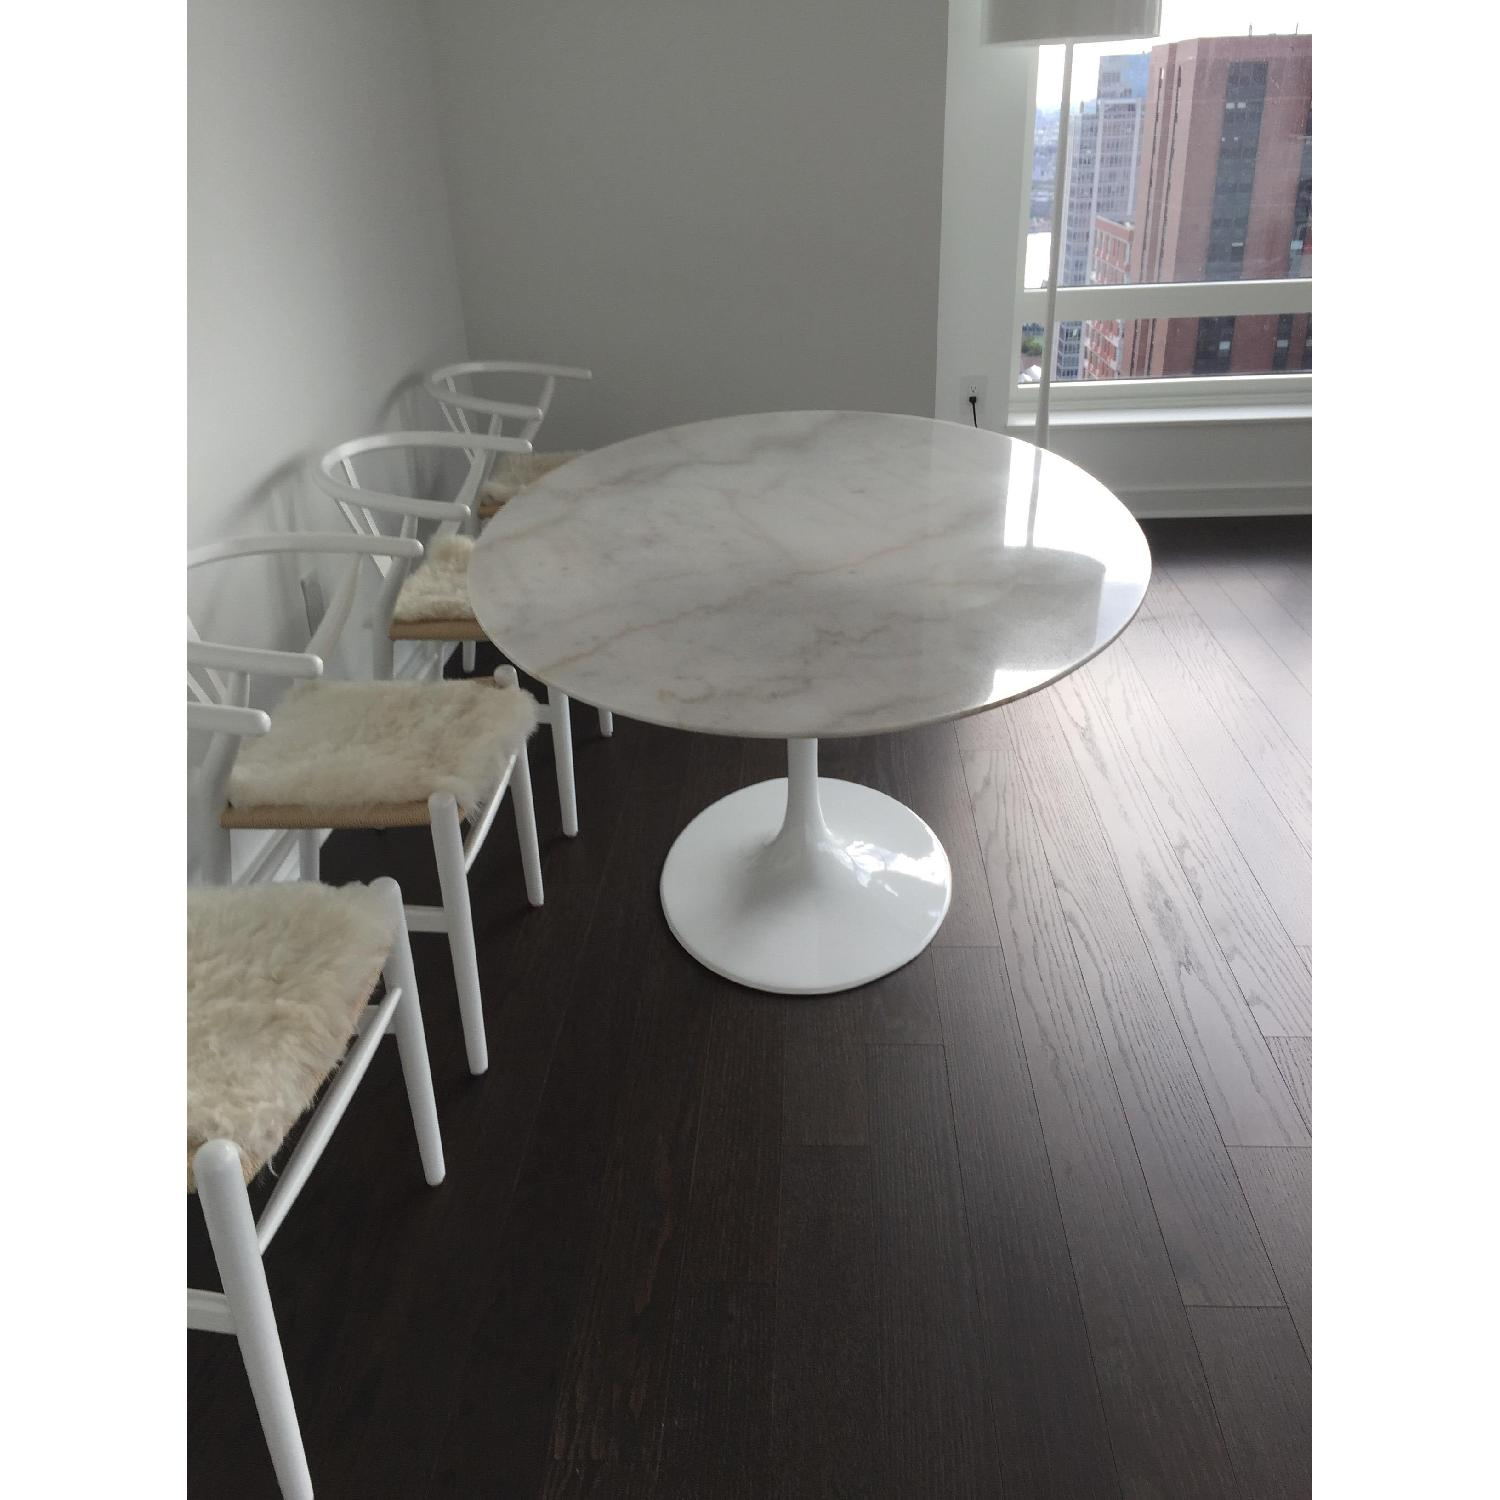 Rove Concepts Oval Tulip Table - image-2